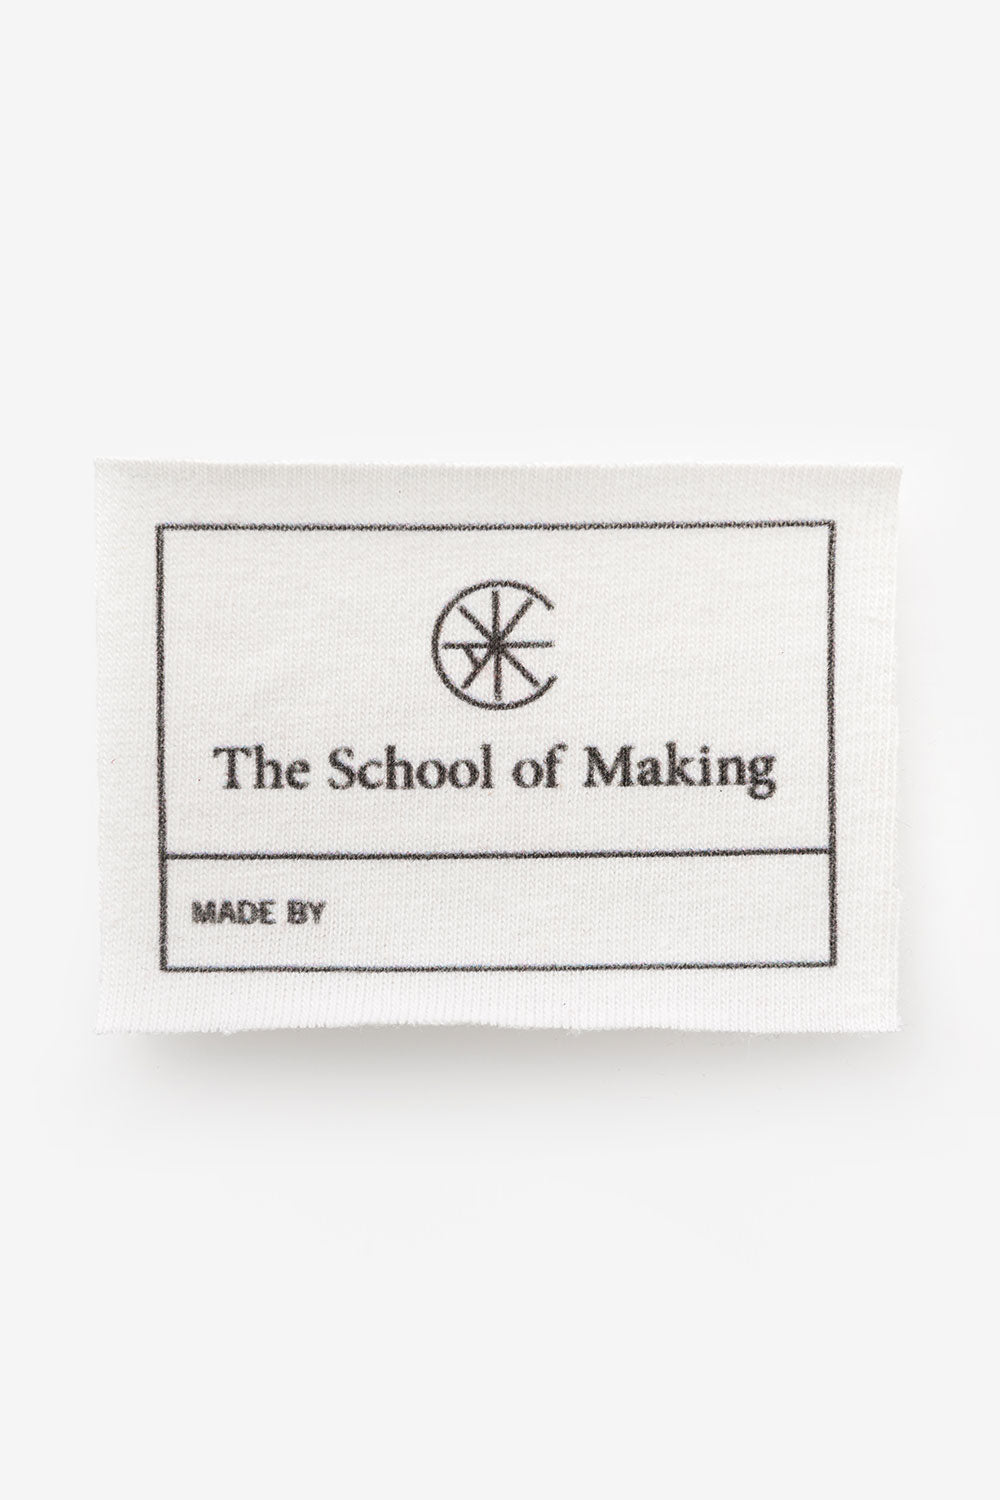 The School of Making TSOM Label for Hand-Sewing and Hand-Embroidery DIY Clothing Projects